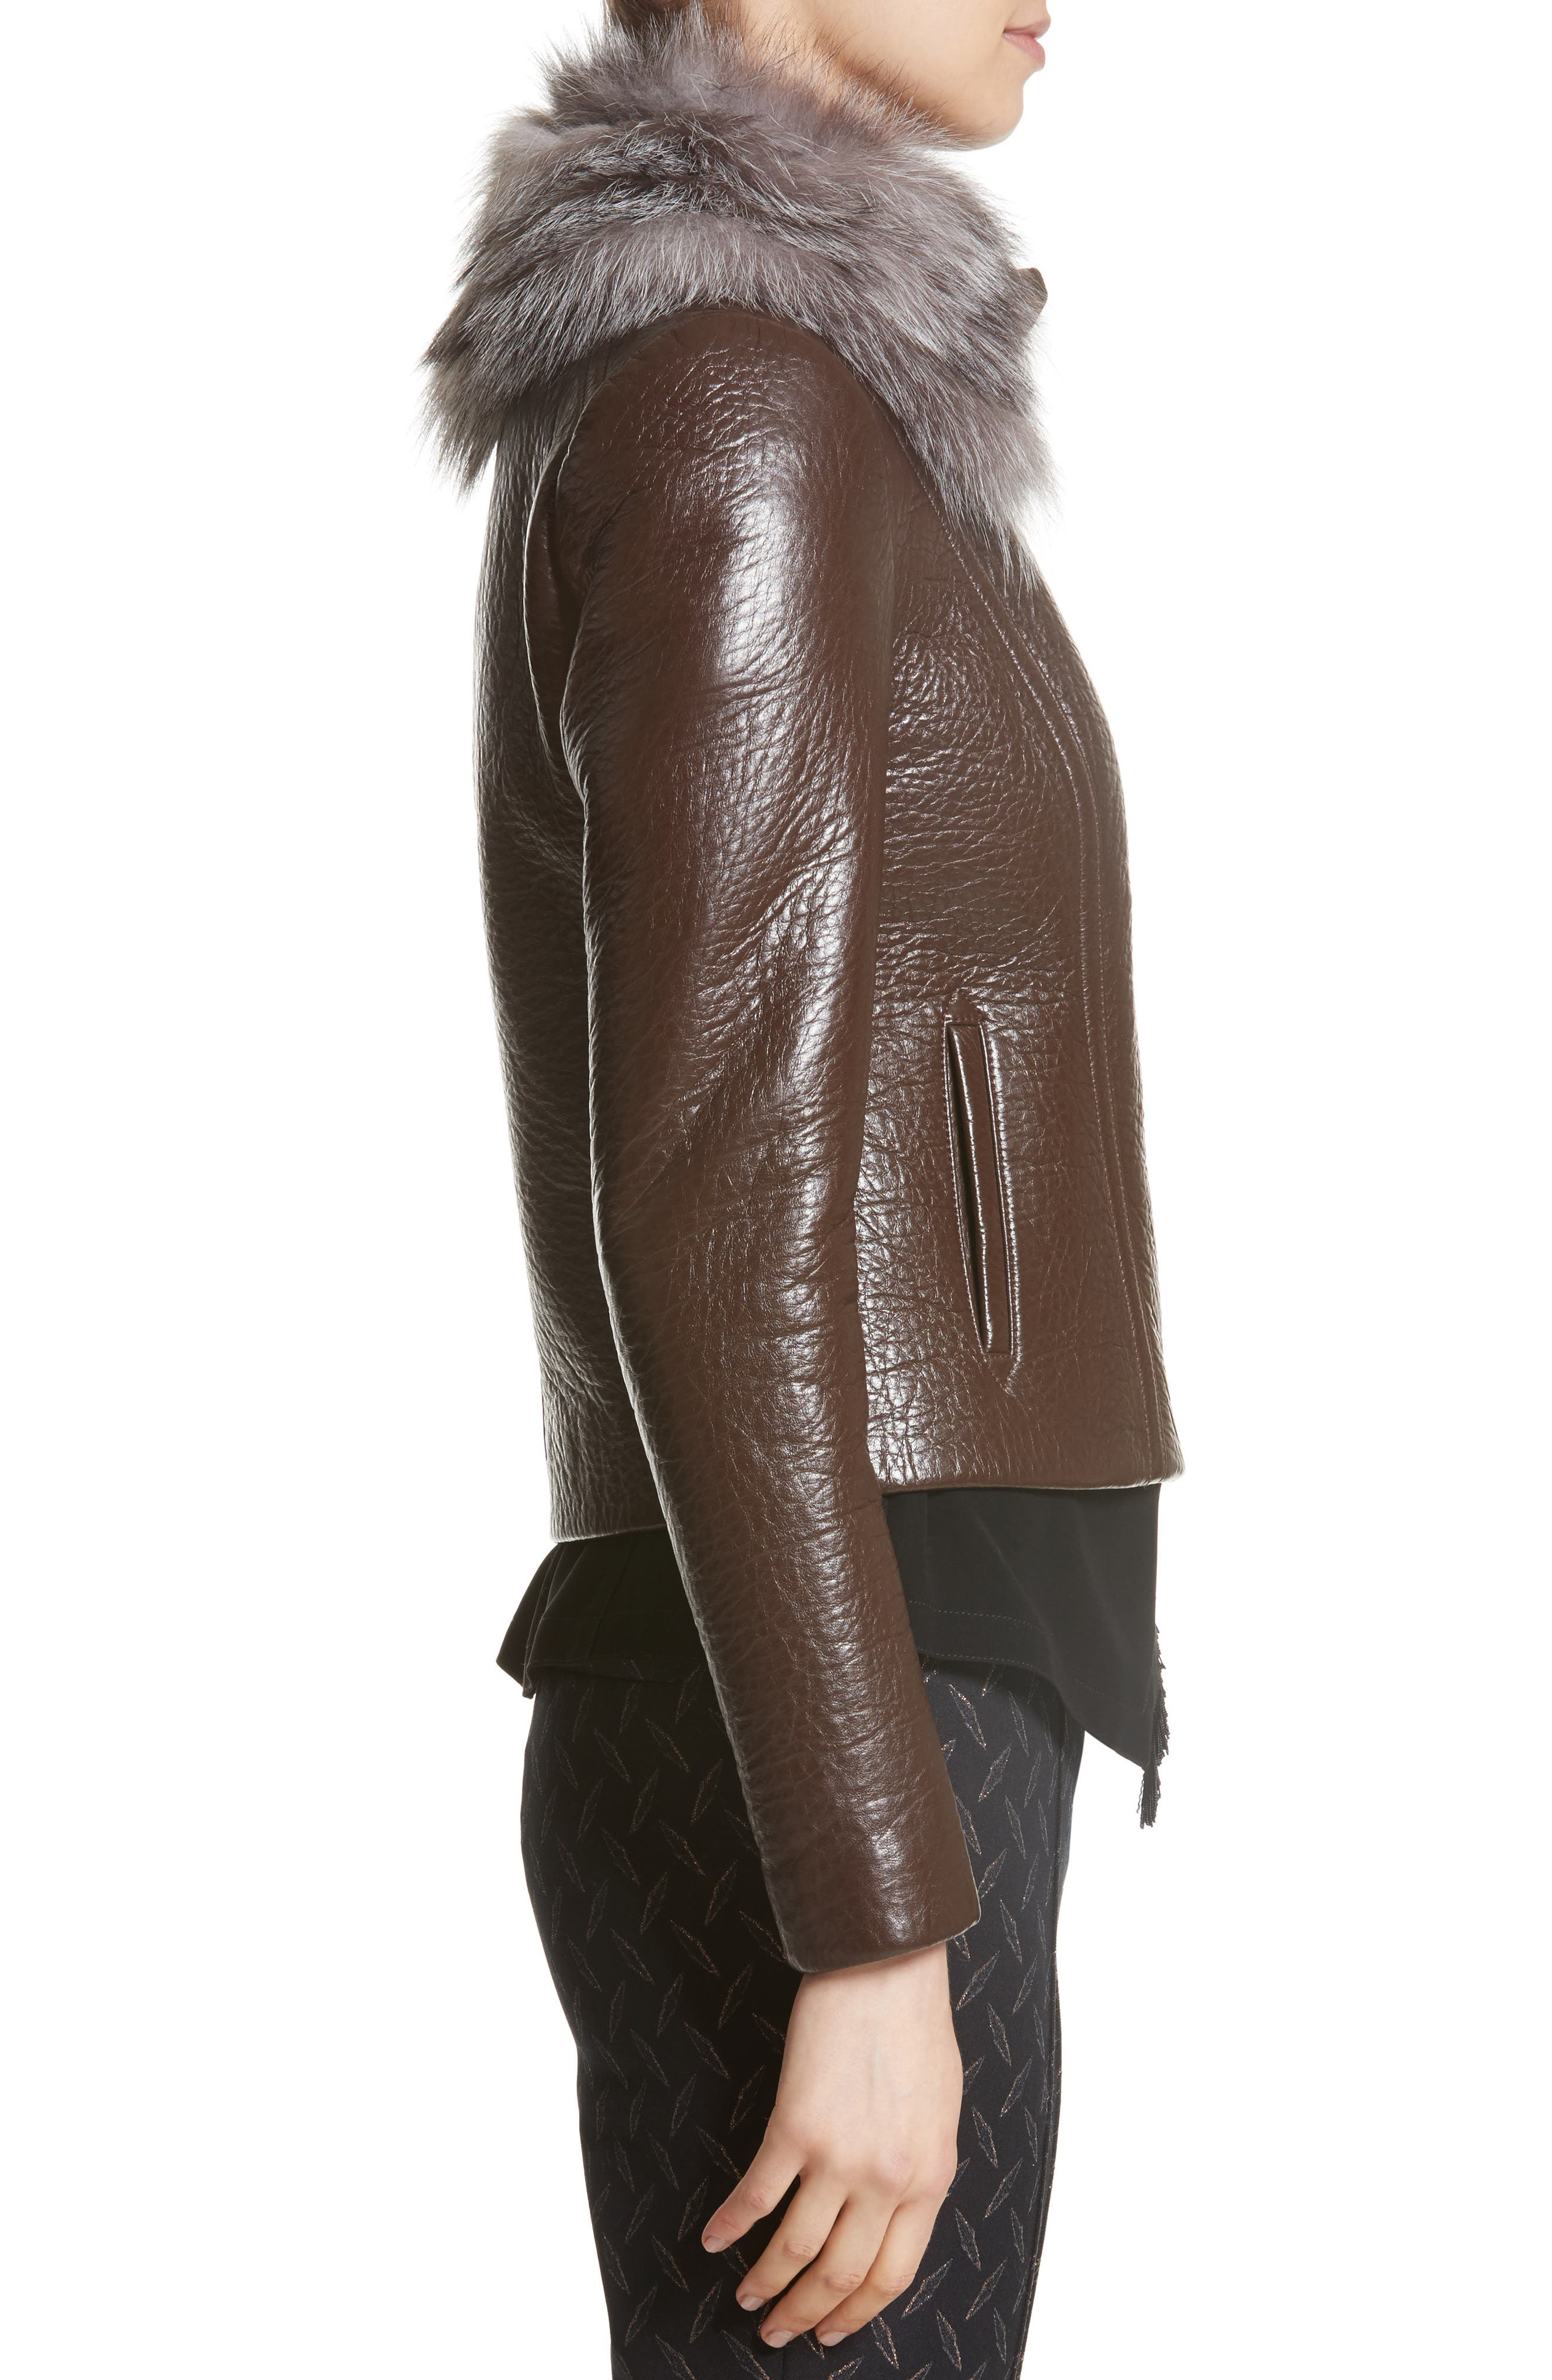 Bonded Moto Leather Jacket with Removable Genuine Fox Fur Collar,                             Alternate thumbnail 3, color,                             219